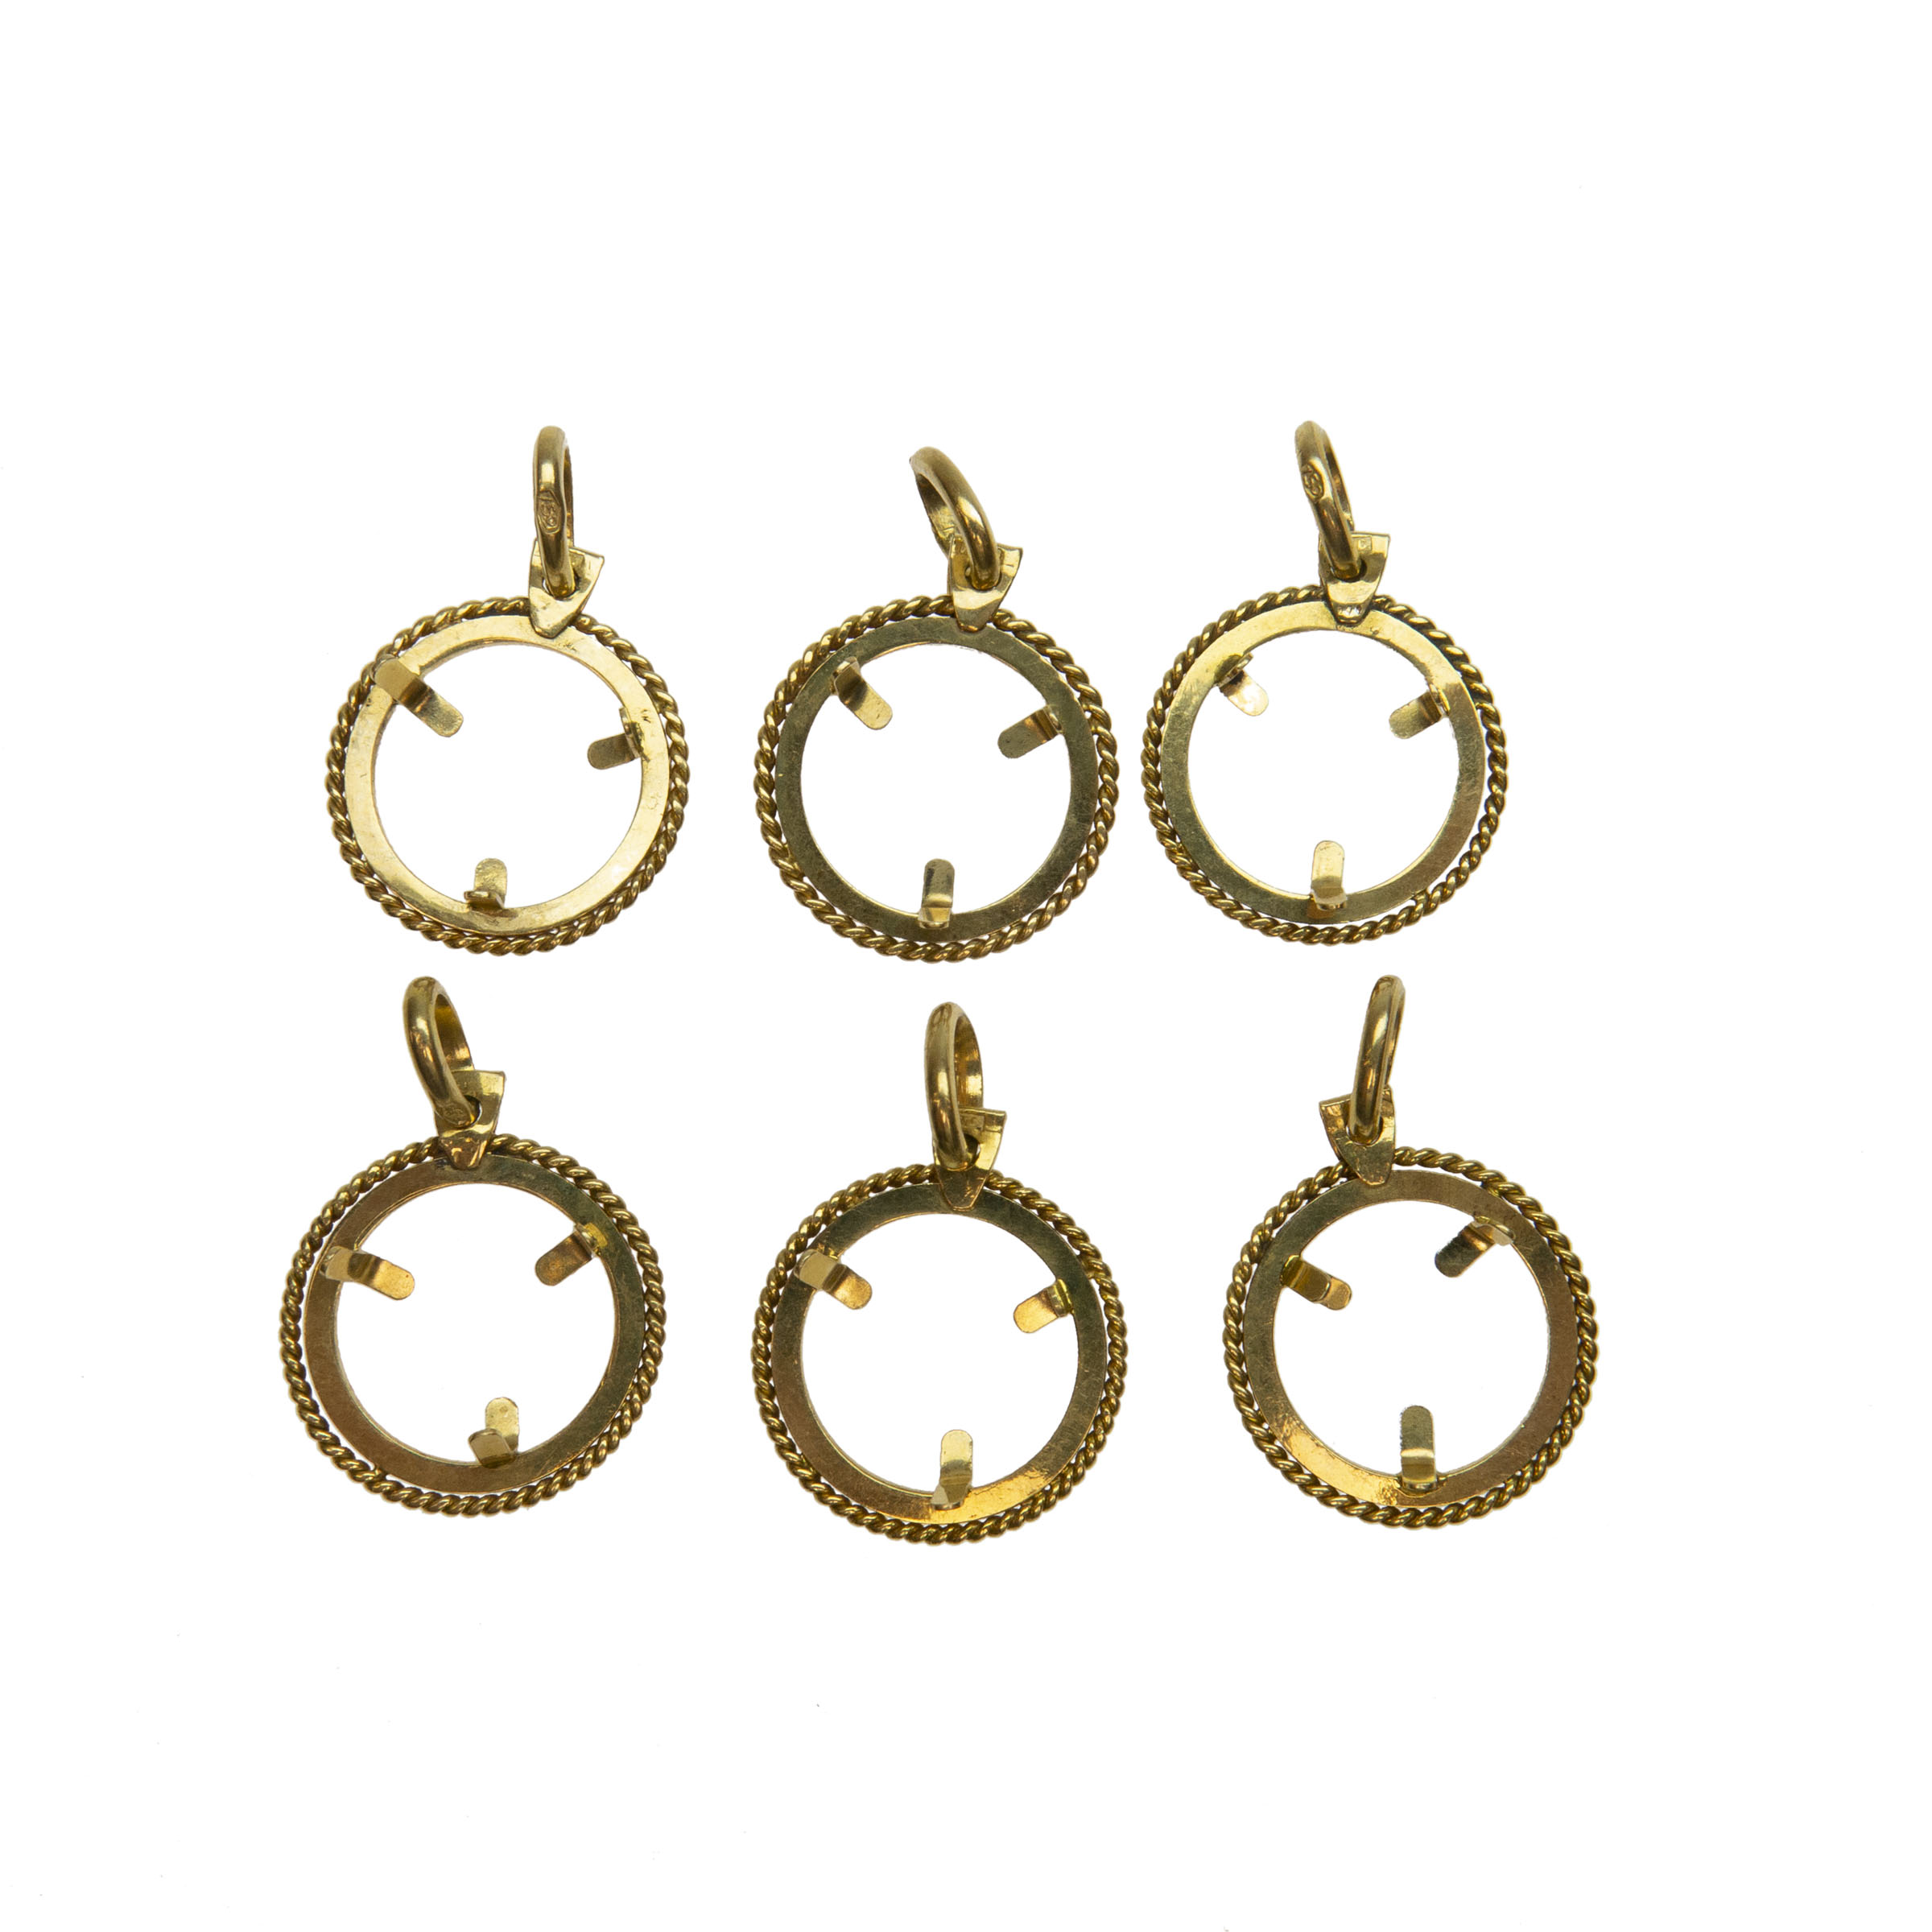 6 X 18K Yellow Gold Coin Frame Pendants